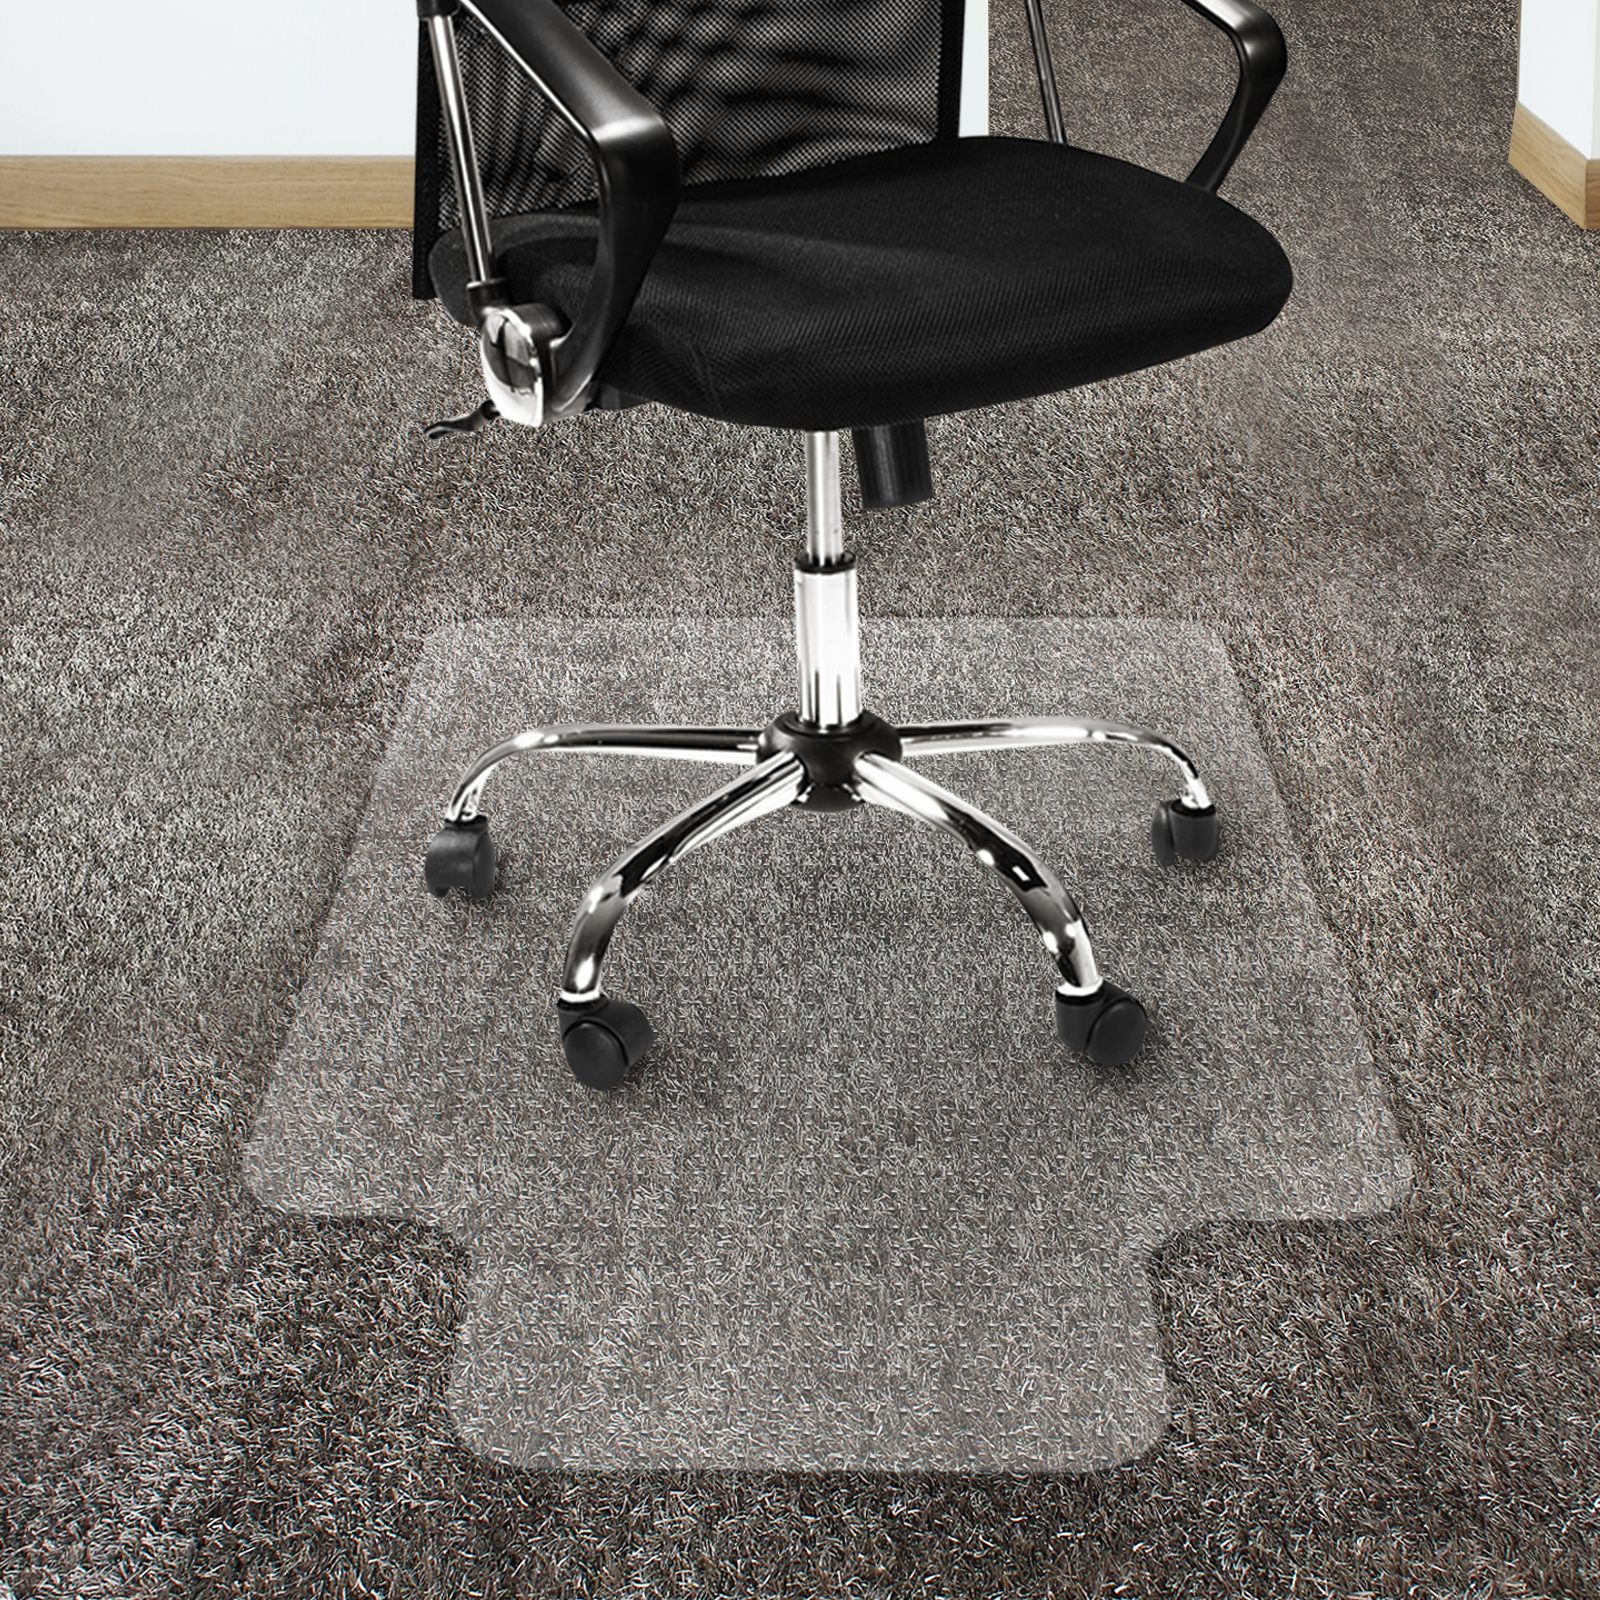 Office Marshal Polycarbonate Chair Mat for High Pile Carpet Floors - Clear Studded Carpet Floor Protection Mat - 36u0027u0027x48u0027u0027 with Lip - Walmart.com : clear polycarbonate chair - Cheerinfomania.Com